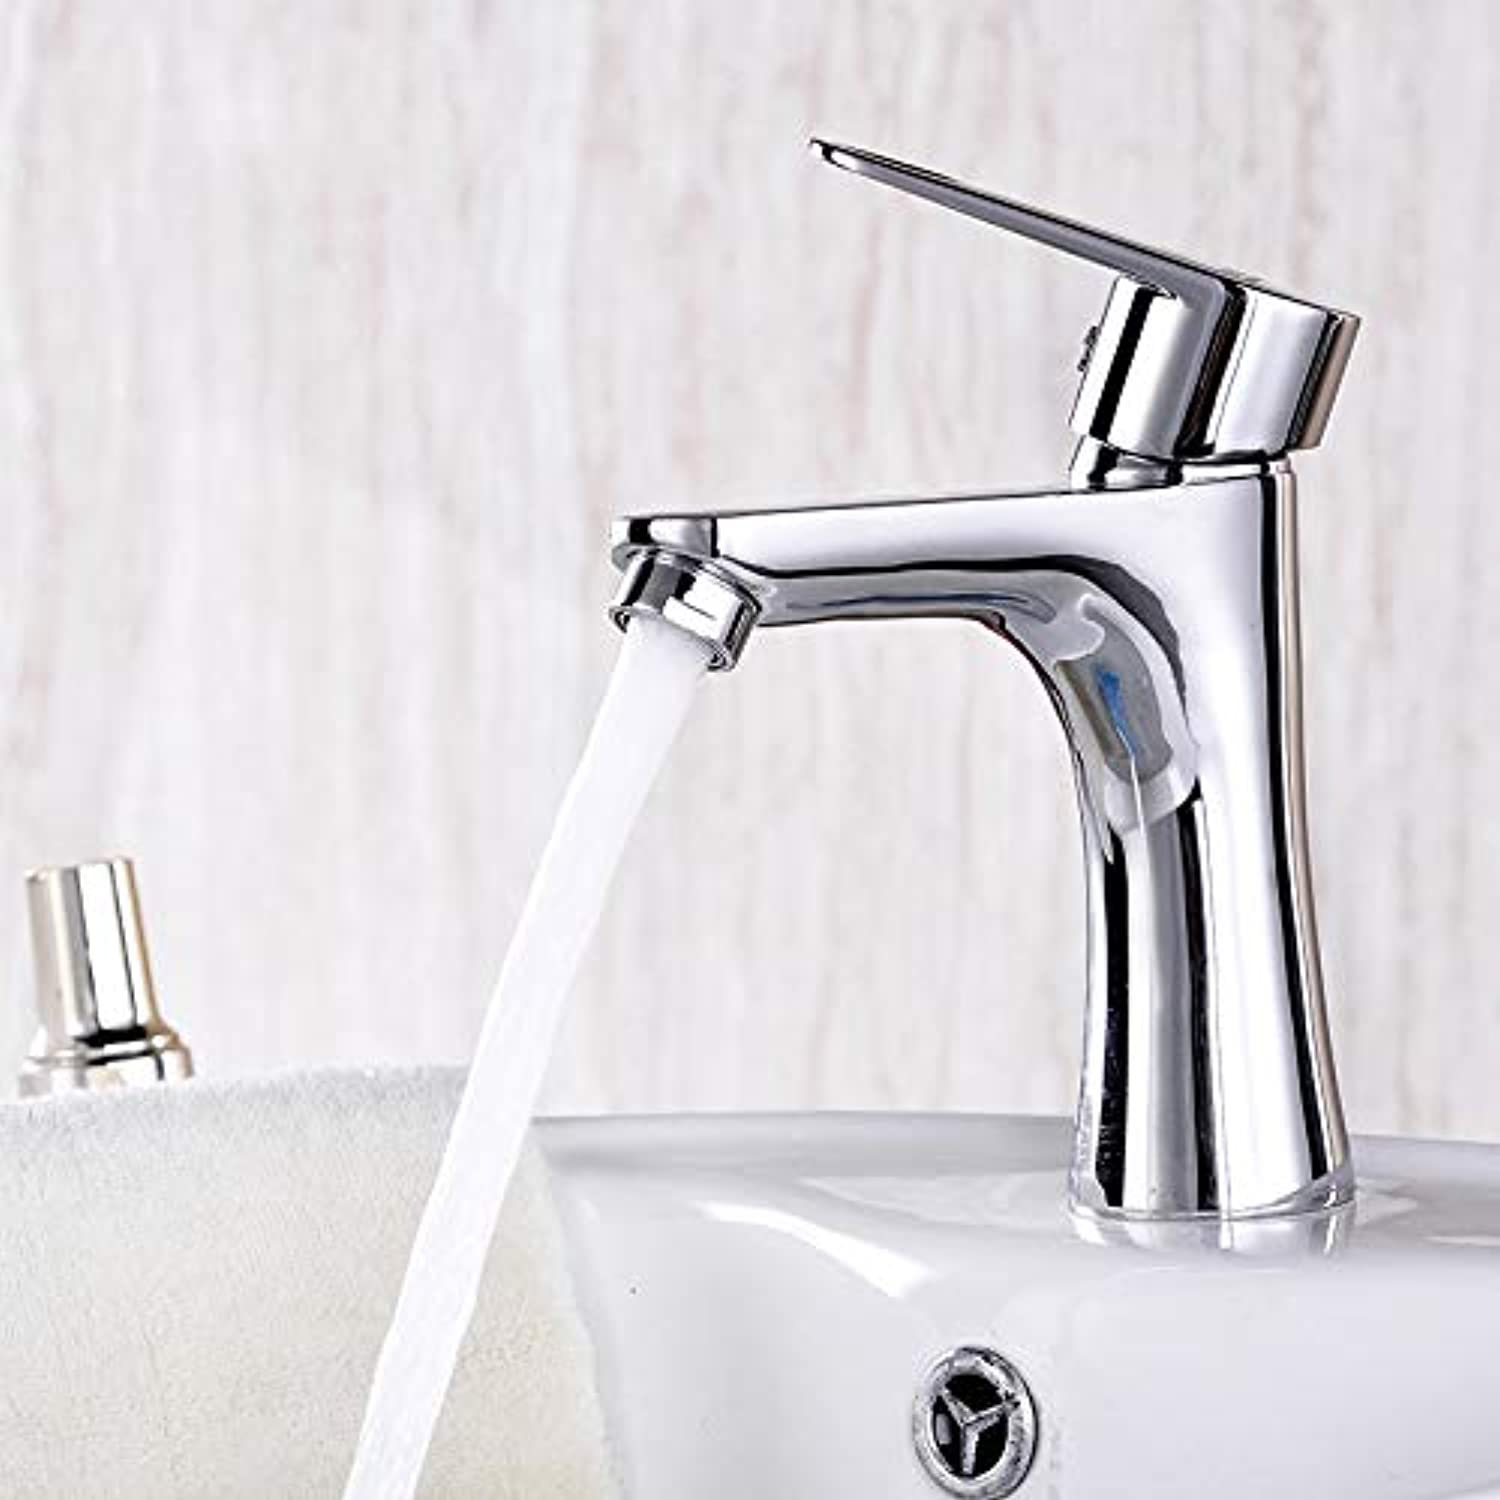 Bathroom Sink Basin Lever Mixer Tap Single-Hole Washbasin Faucet Single-Hole Washbasin Faucet Cool-Hot Mixed Water Kitchen Bathroom Basin Single-Hole